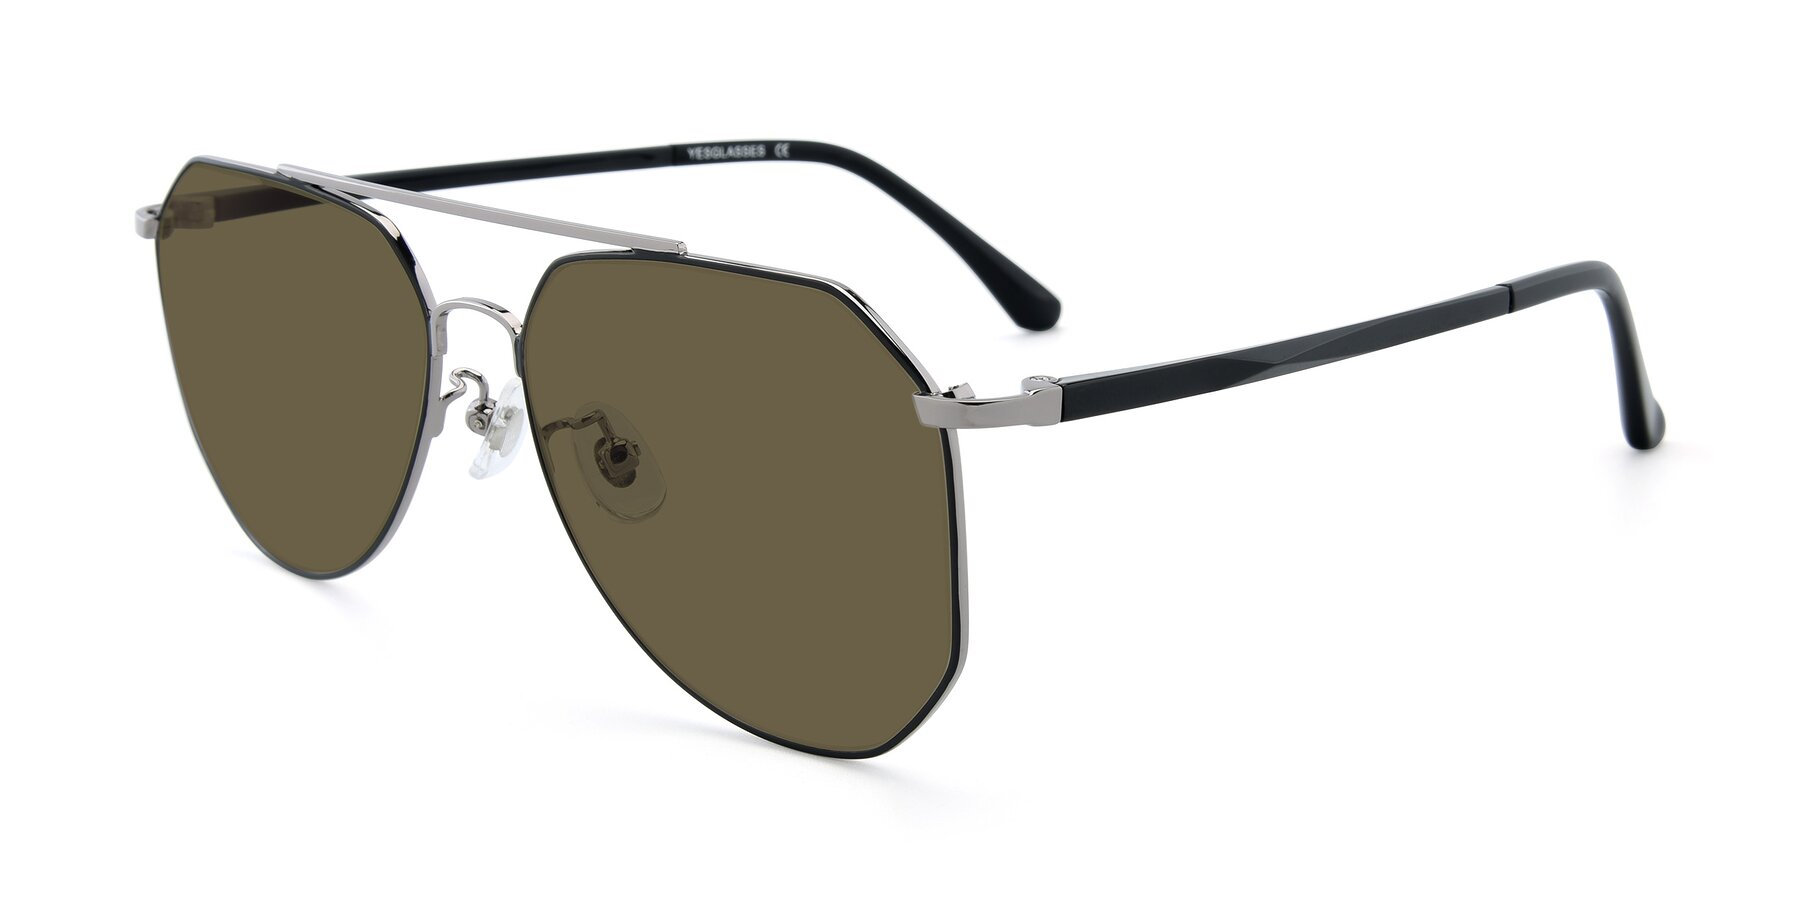 Angle of XC-8040 in Black/ Gun with Brown Polarized Lenses